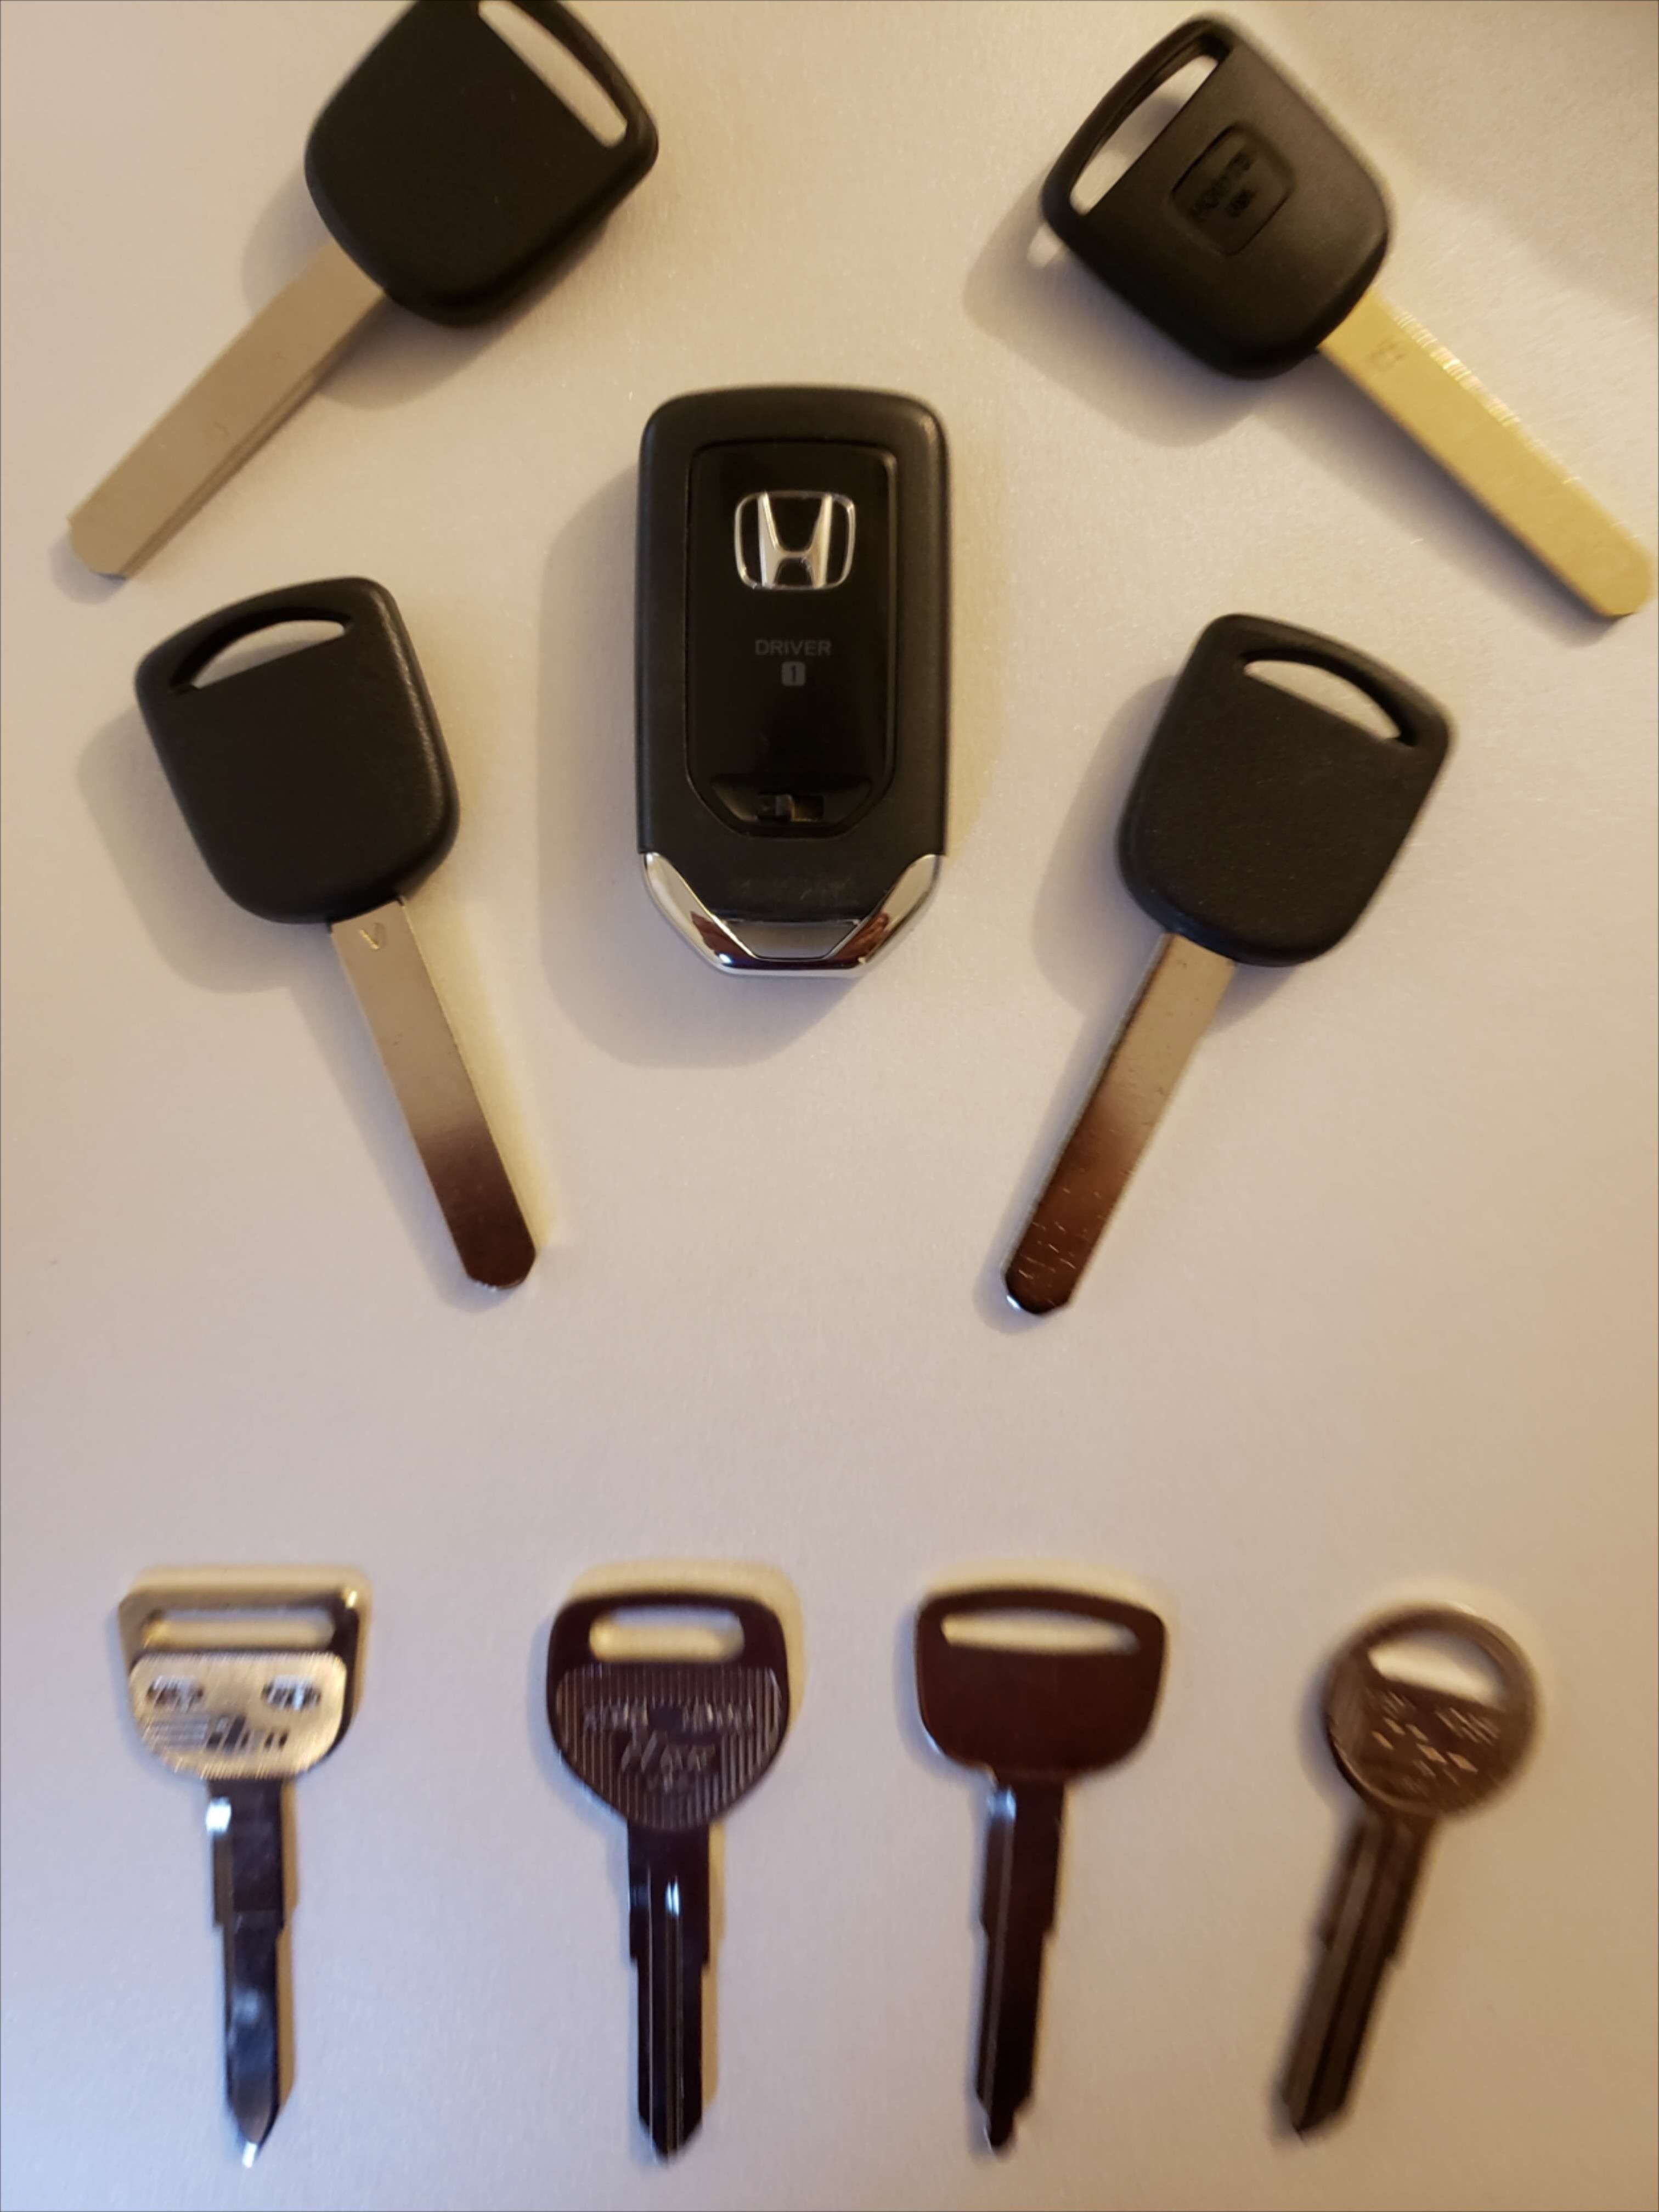 Have You Lost Your Car Key Do You Need A Spare Key Or Have A Broken Key This Nissan Micra Had A Key Auto Locksmith Emergency Locksmith Old Key